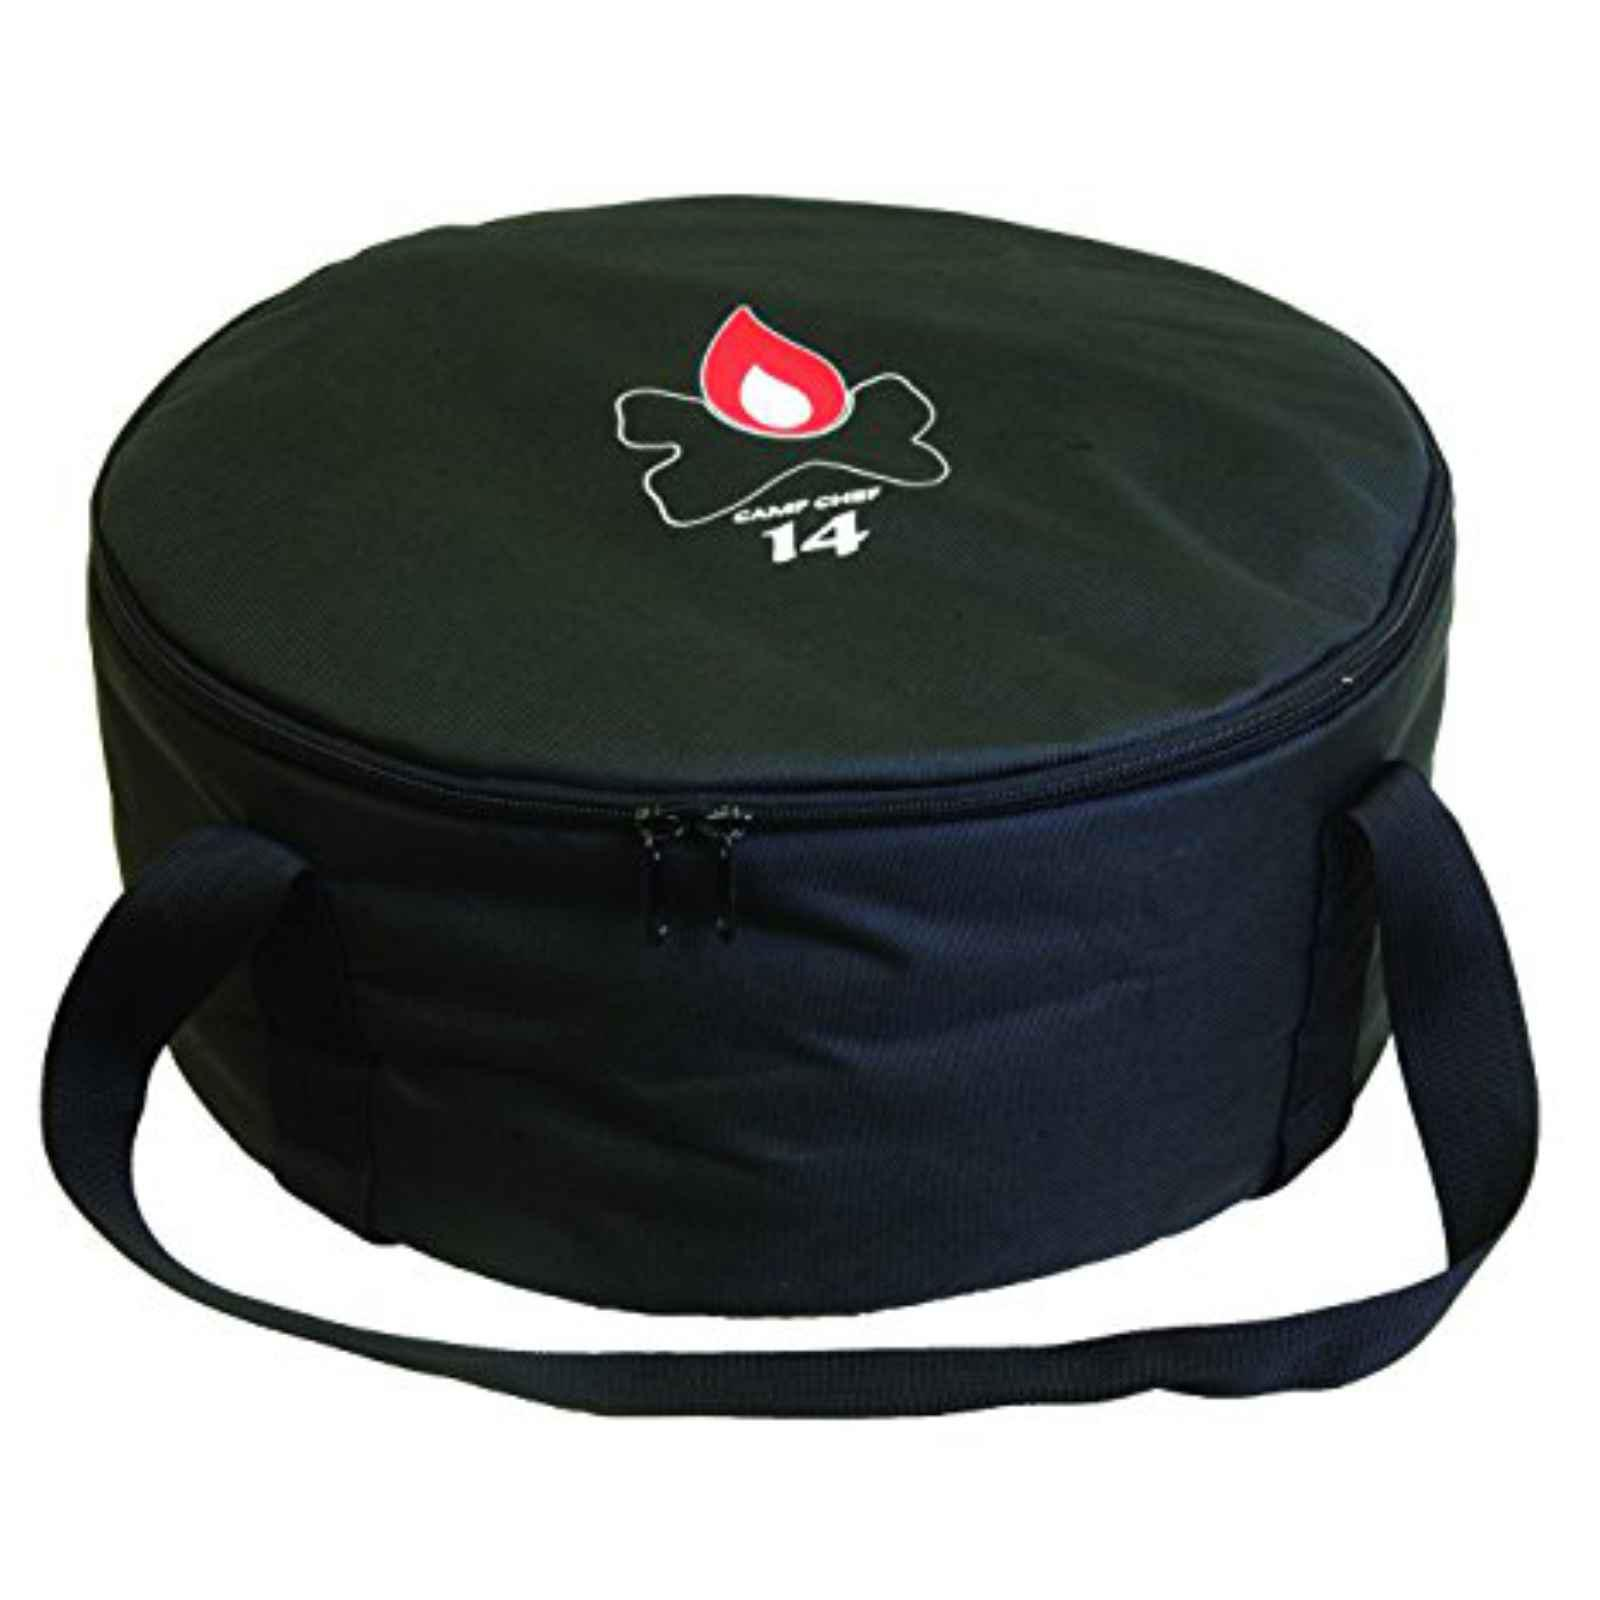 "Camp Chef 12"" Padded Dutch Oven Carry Bag with Ties Down Straps"